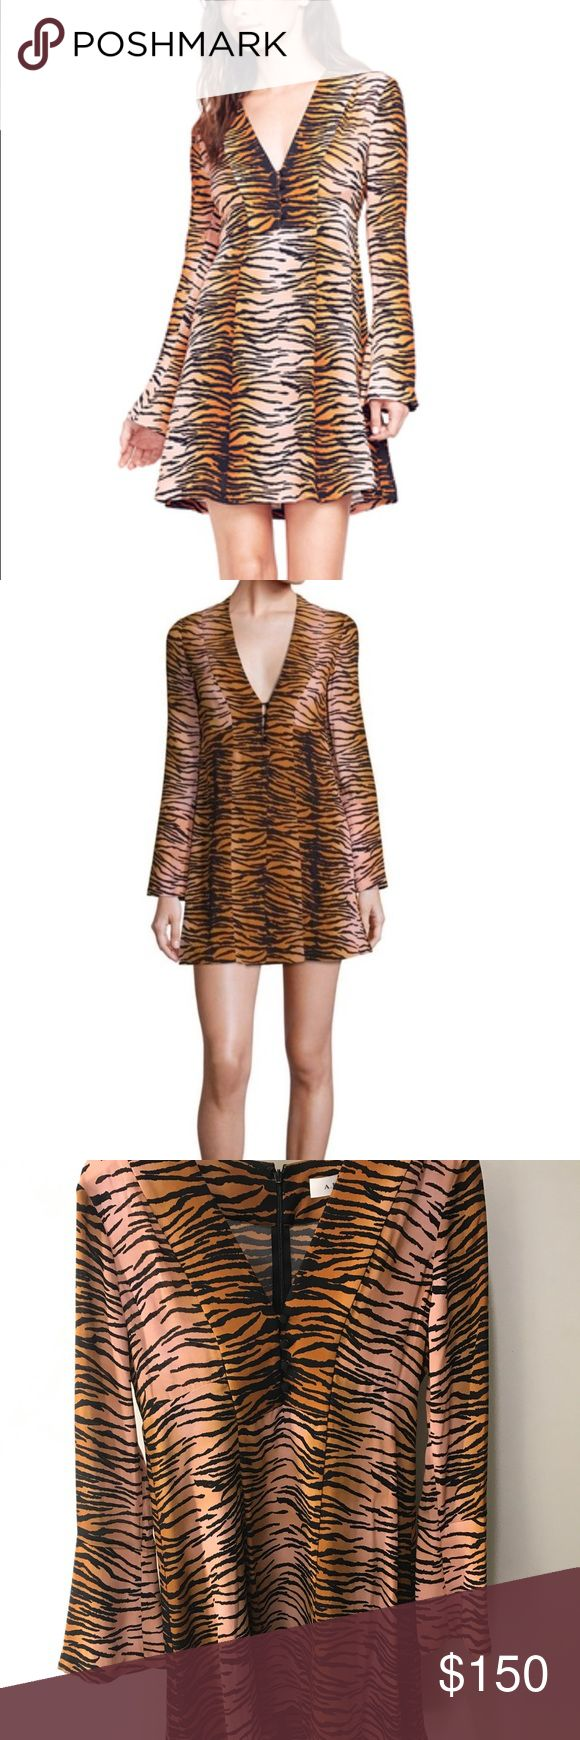 """ALC tiger print dress! Never been worn! Eye-catchy tiger printed dress exudes appeal. deep v-neckline. front button closure. long sleeves. concealed back zip closure. about 35"""" from shoulder to hem. silk. A.L.C. Dresses Mini"""